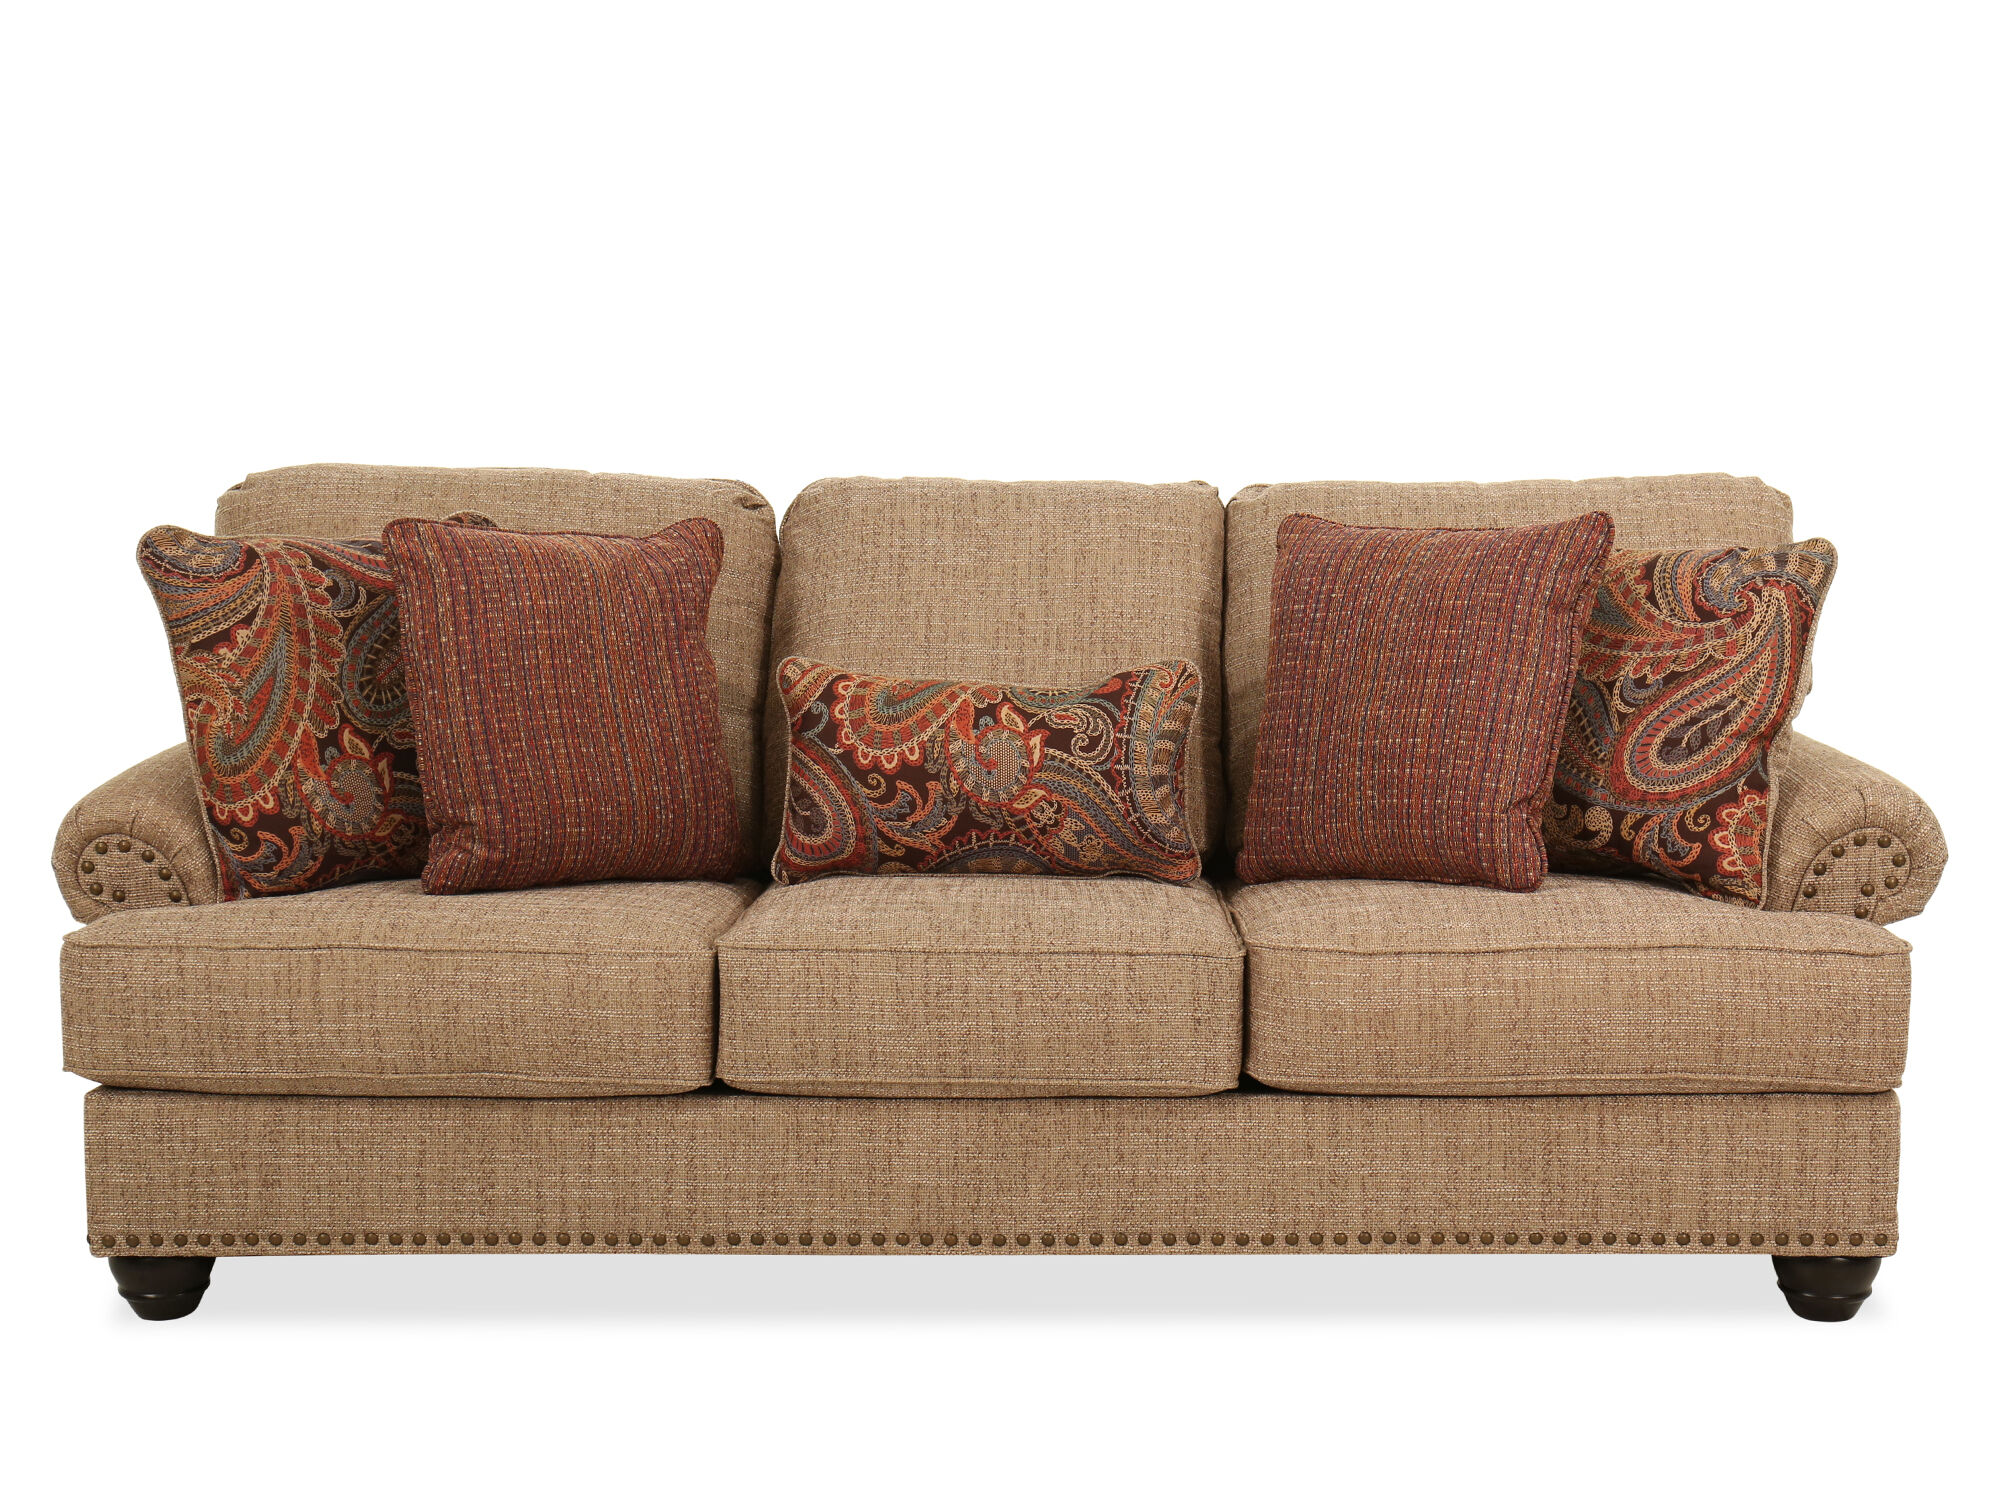 92 Nailhead Trimmed Casual Sofa In Beige Mathis